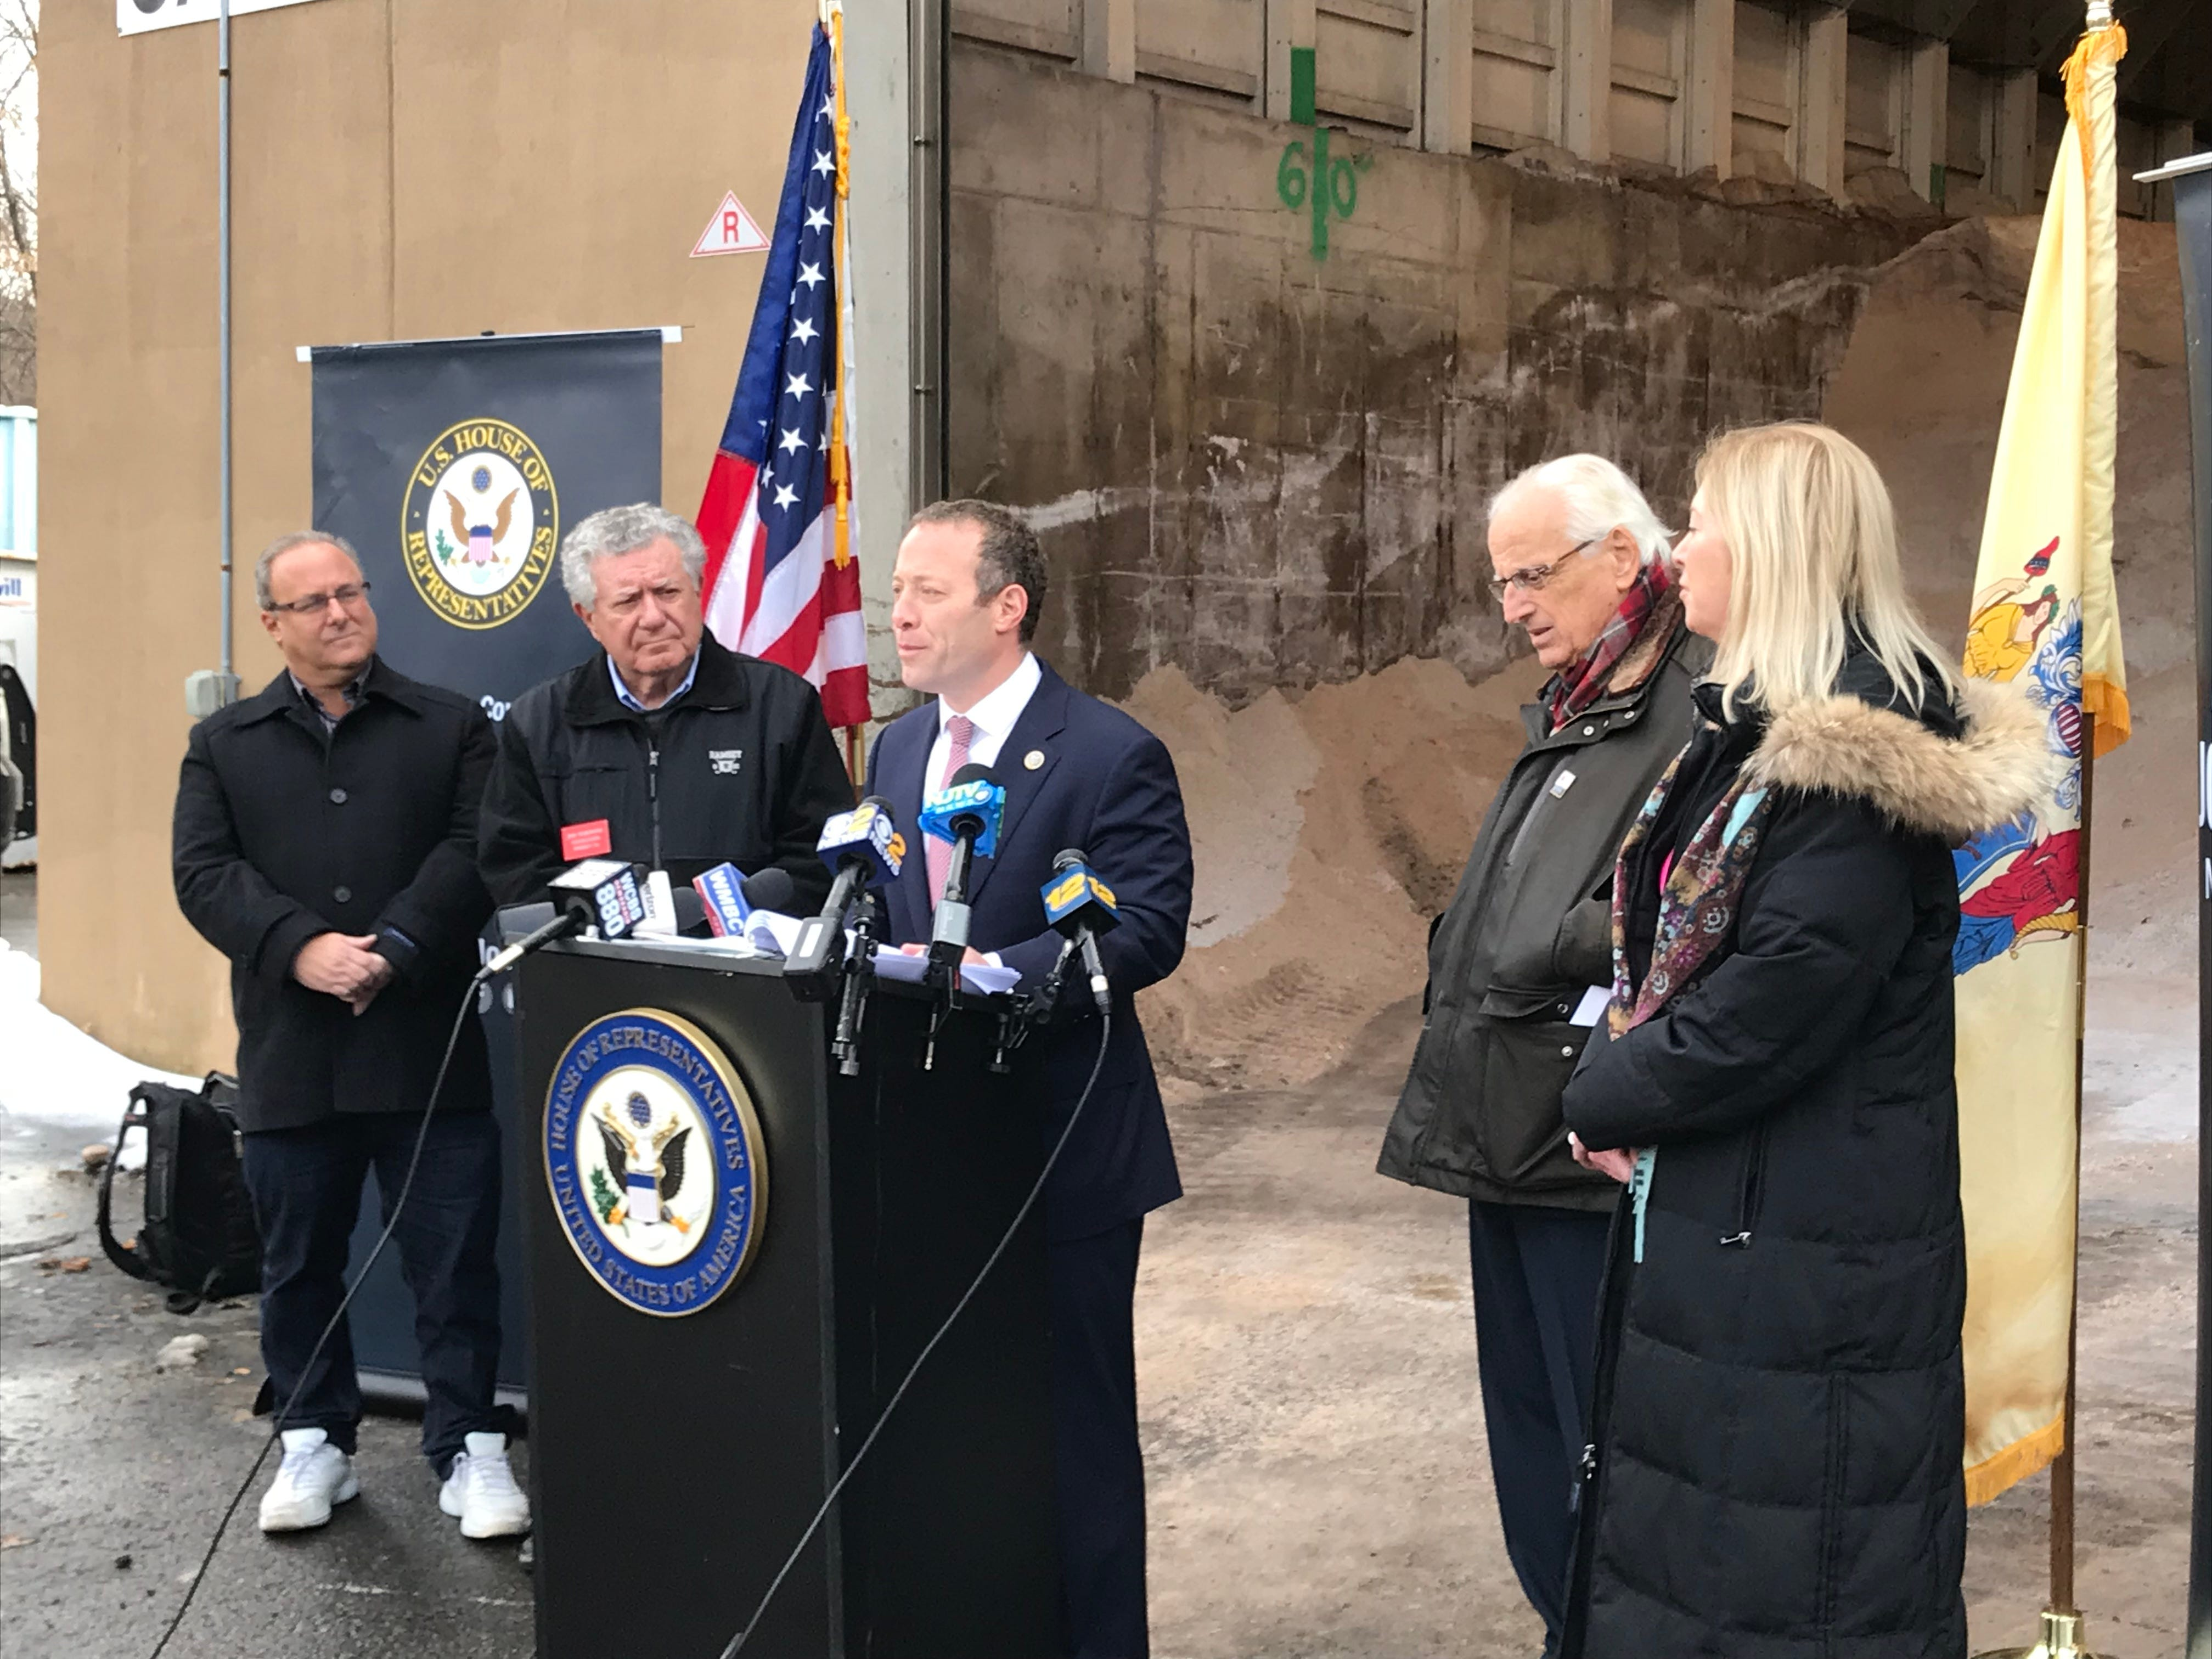 Gottheimer, Pascrell to put SALT back on table in Democratic-led House